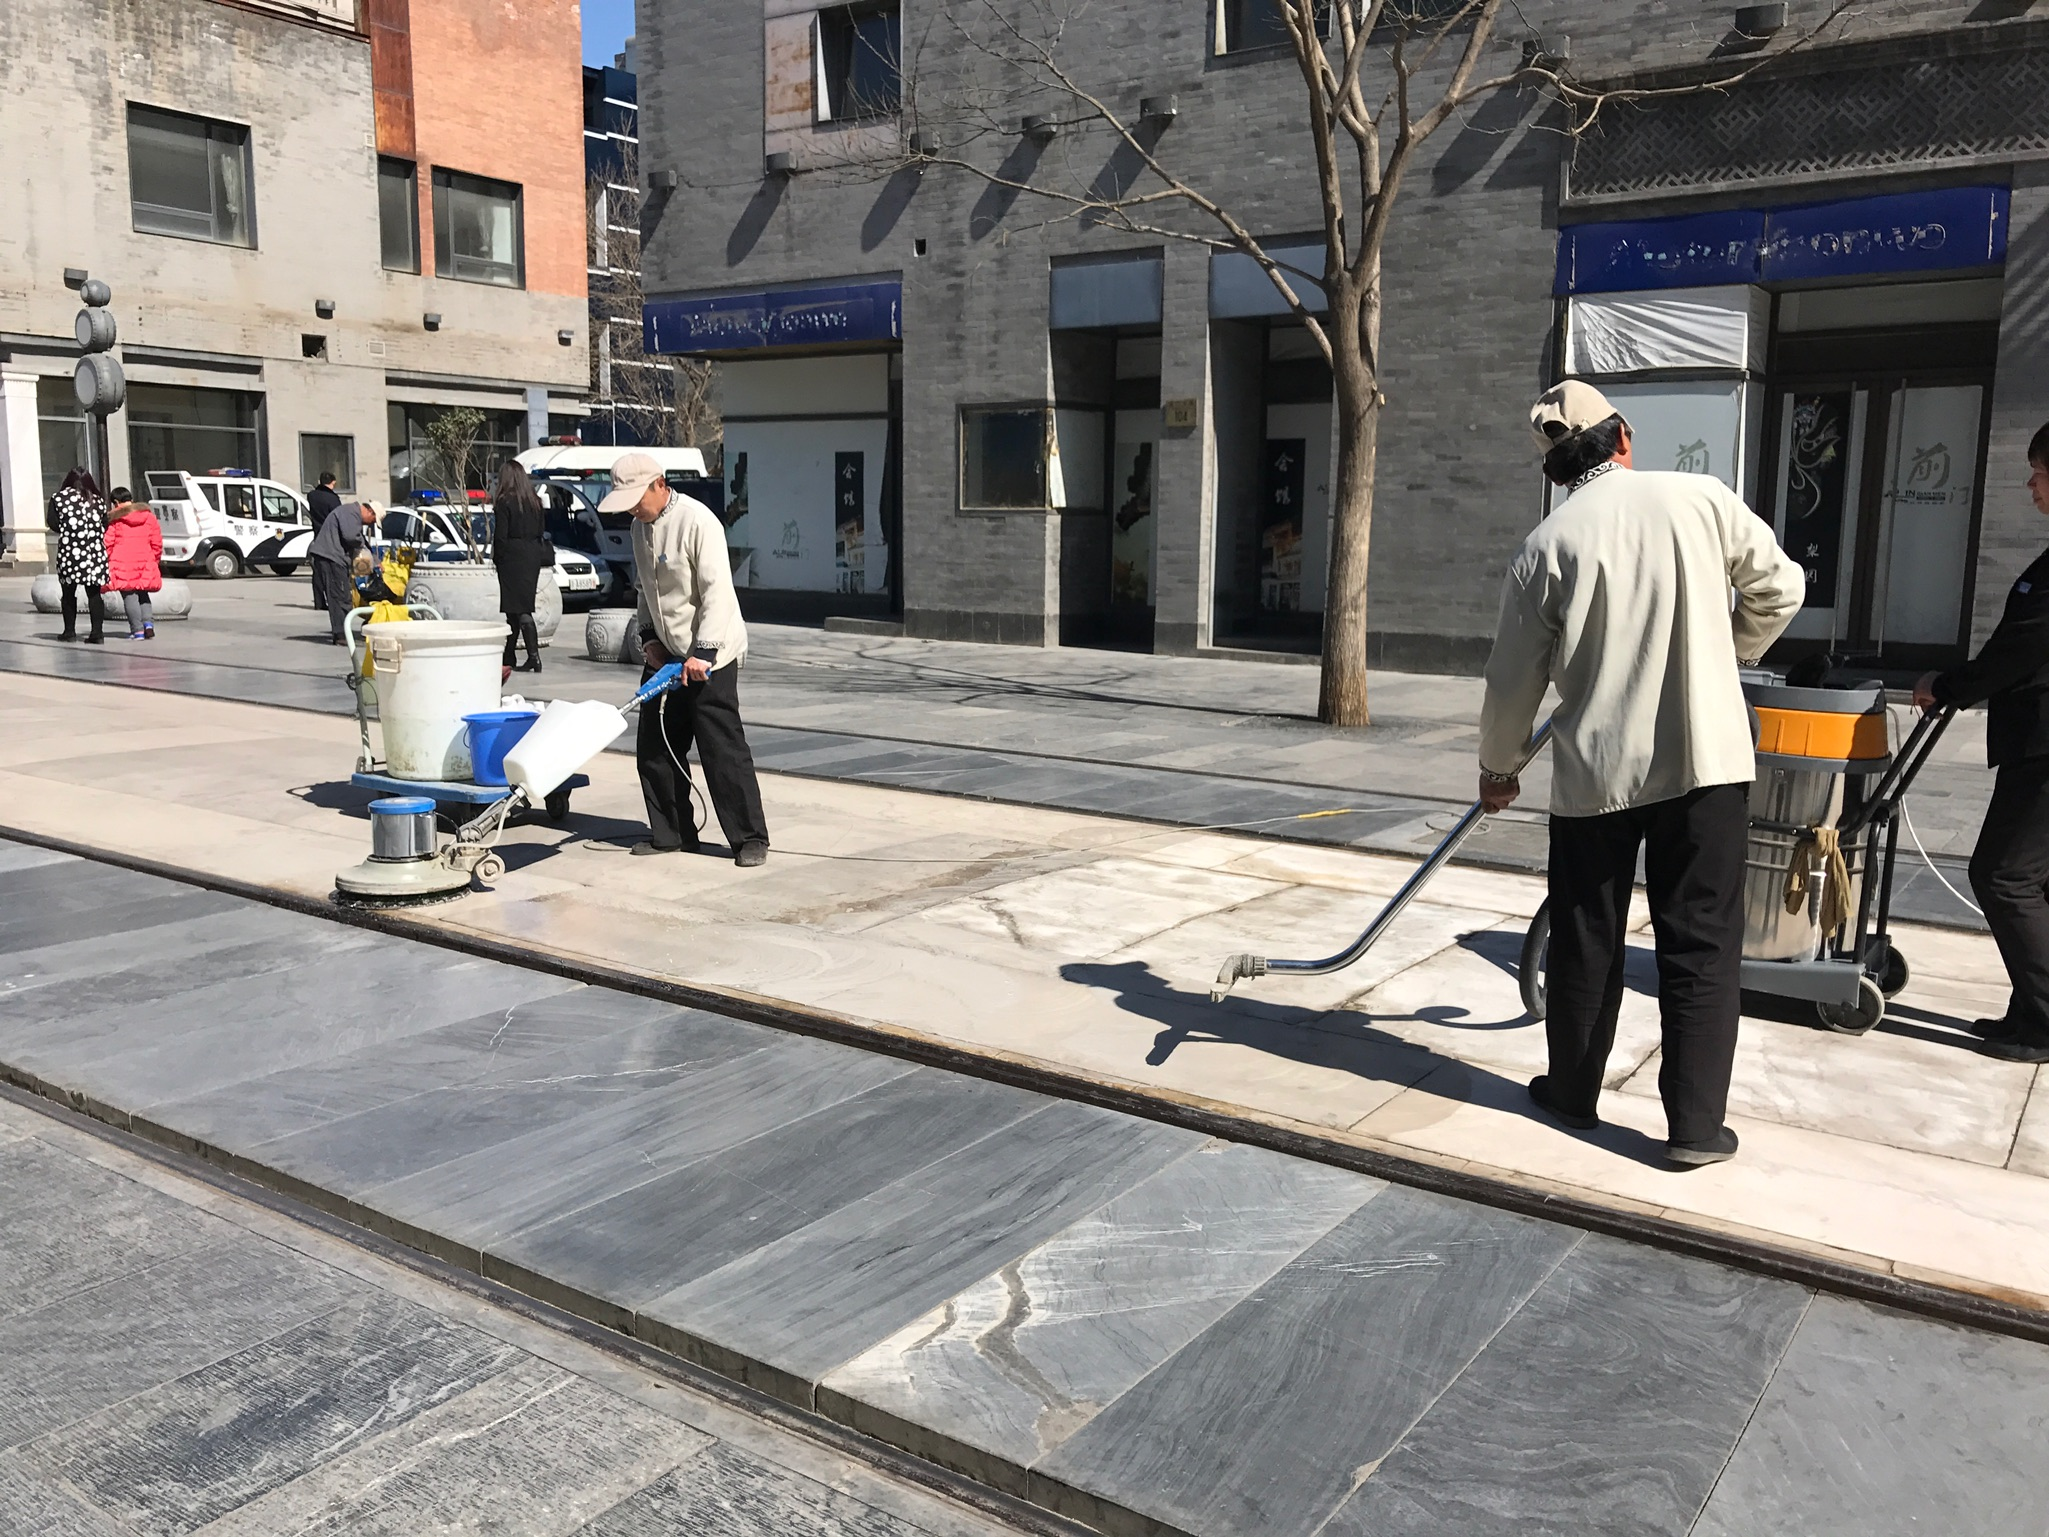 Buffing the pavement of outdoor mall